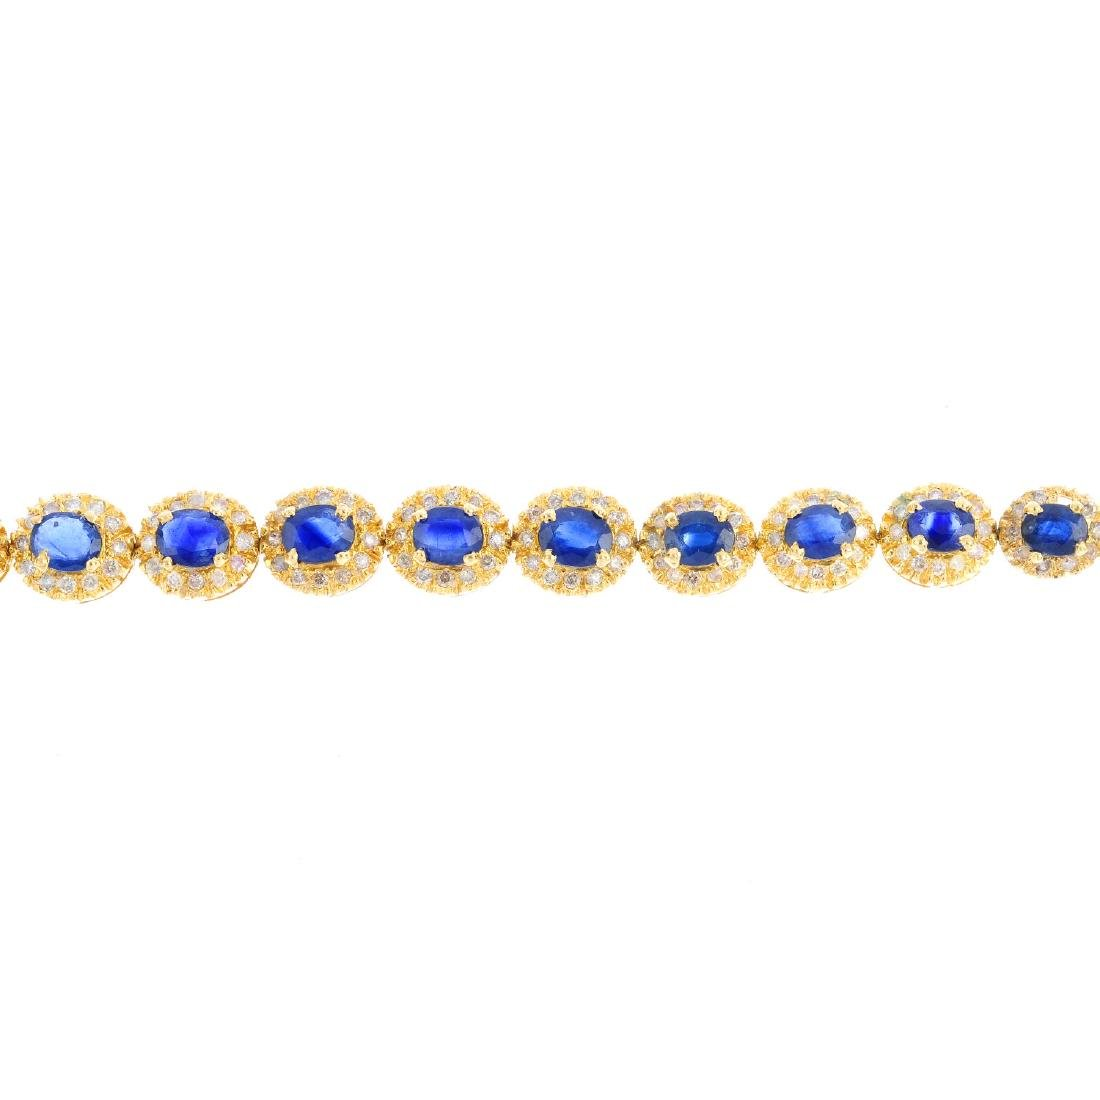 A sapphire and diamond bracelet. Comprising a series of